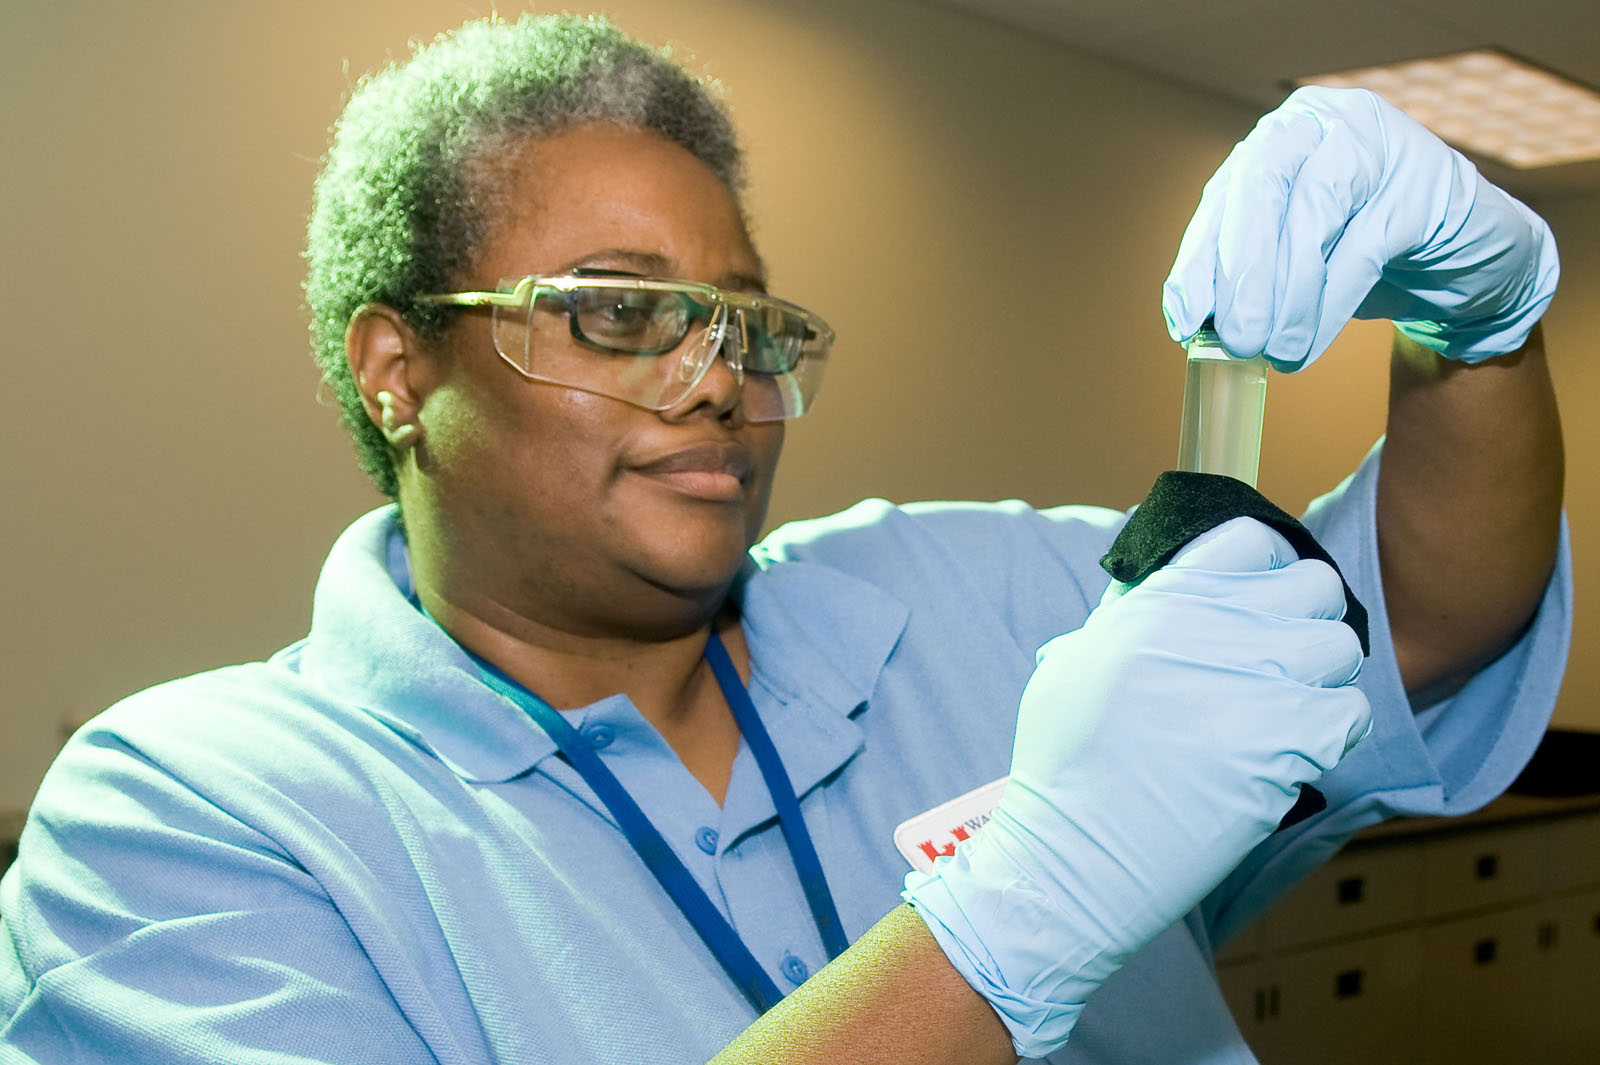 An EPA scientist examines a water sample. (Photo courtesy of EPA)